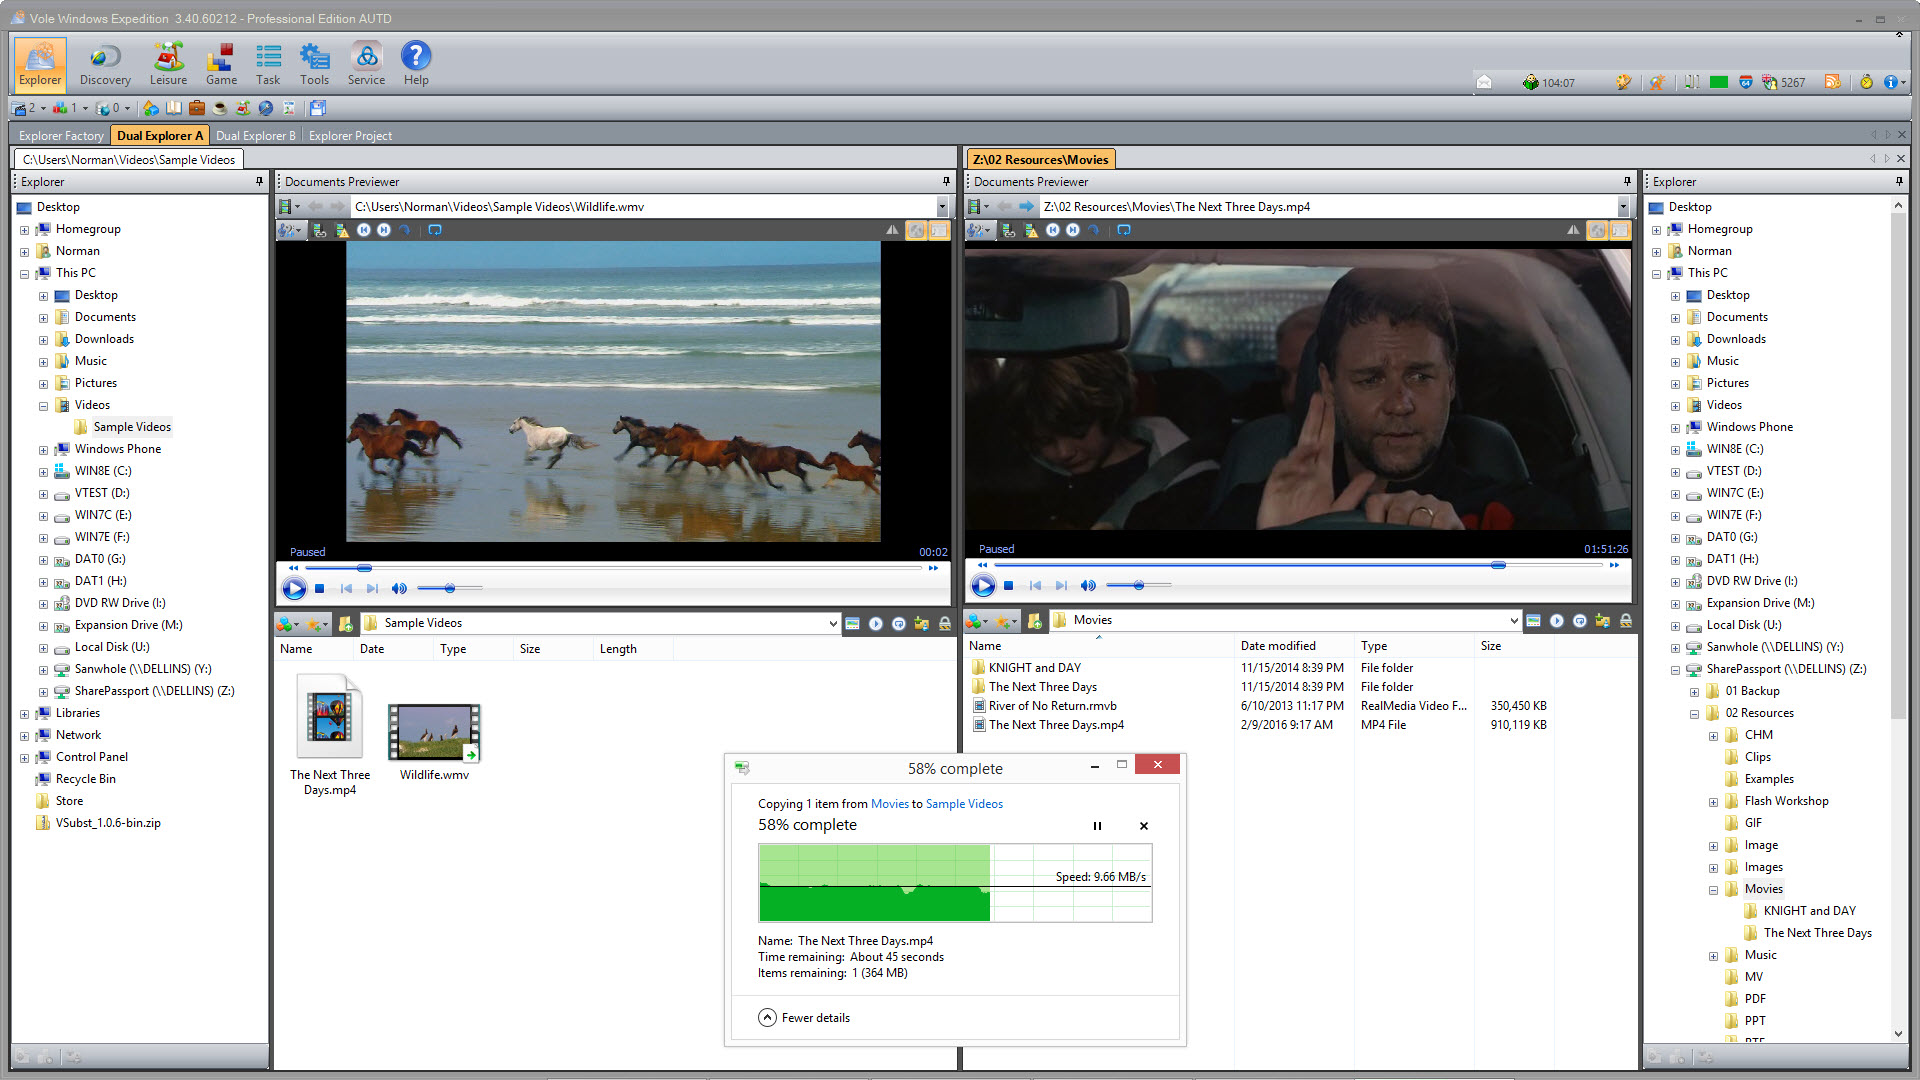 Vole Windows Expedition Ultimate Edition, File Management Software Screenshot